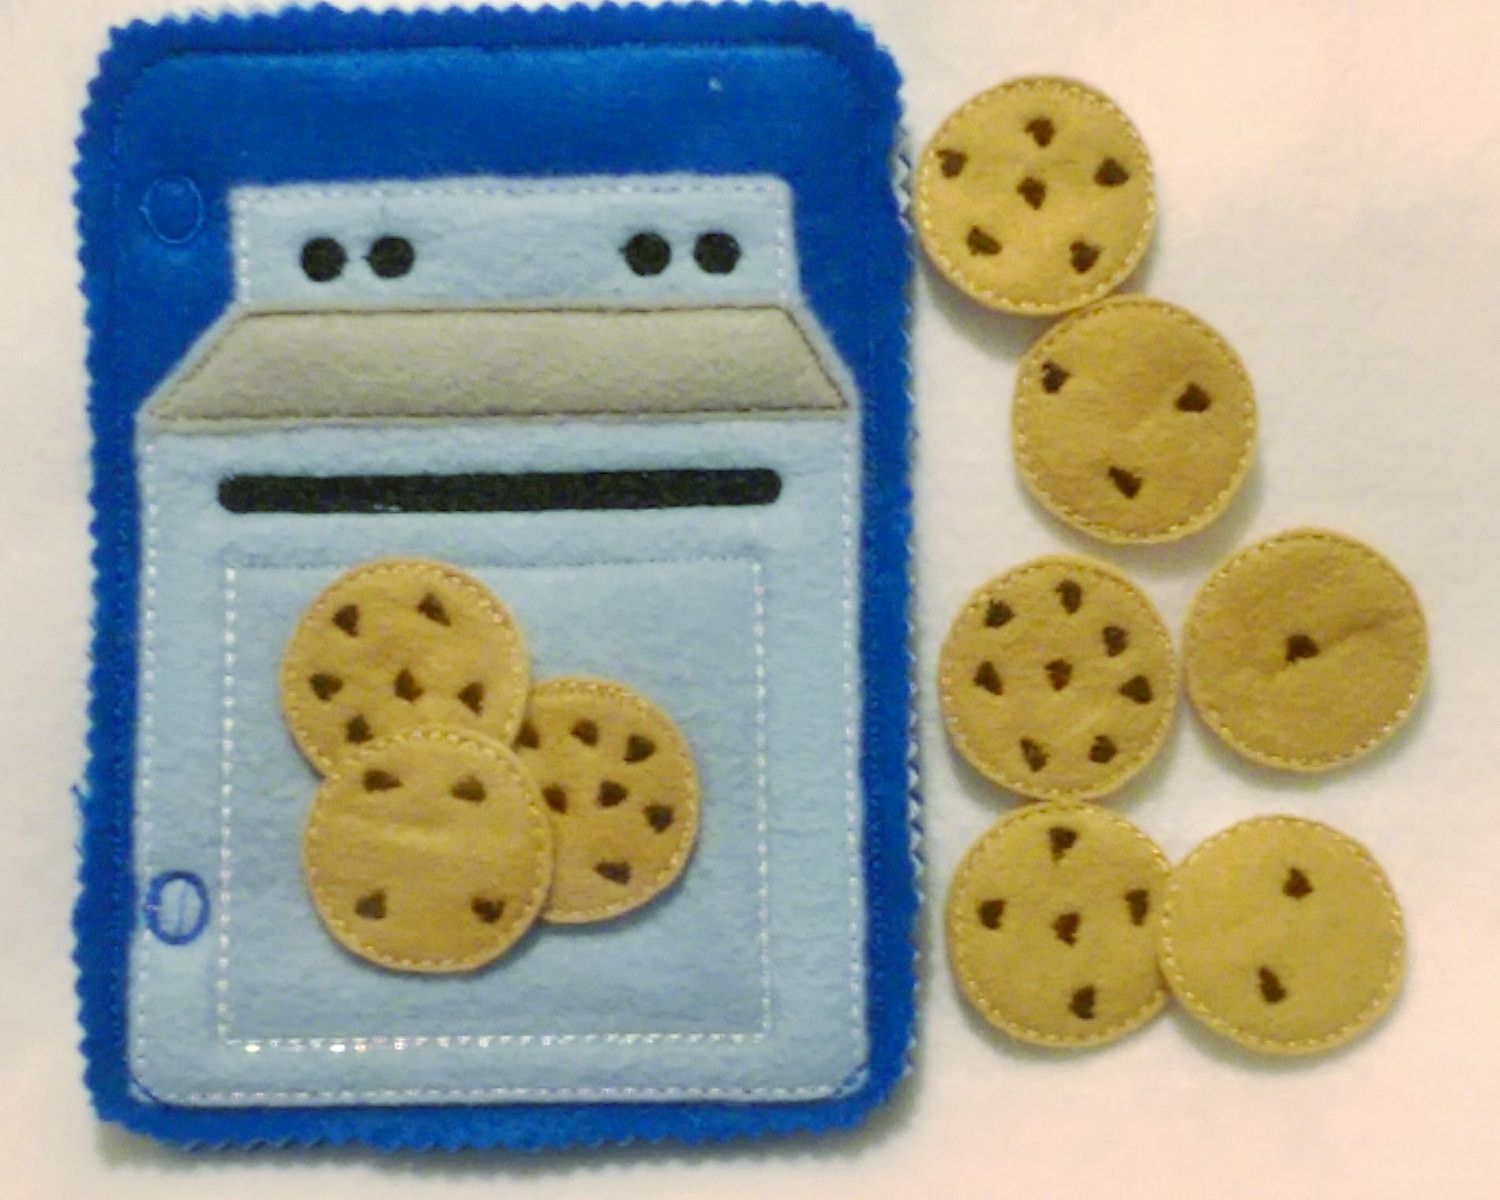 Counting cookies blue baking oven quiet book page which can be added to other pages to create the perfect quiet book or buy just this page for hours of fun. Set comes with 9 chocolate chip cookies wit